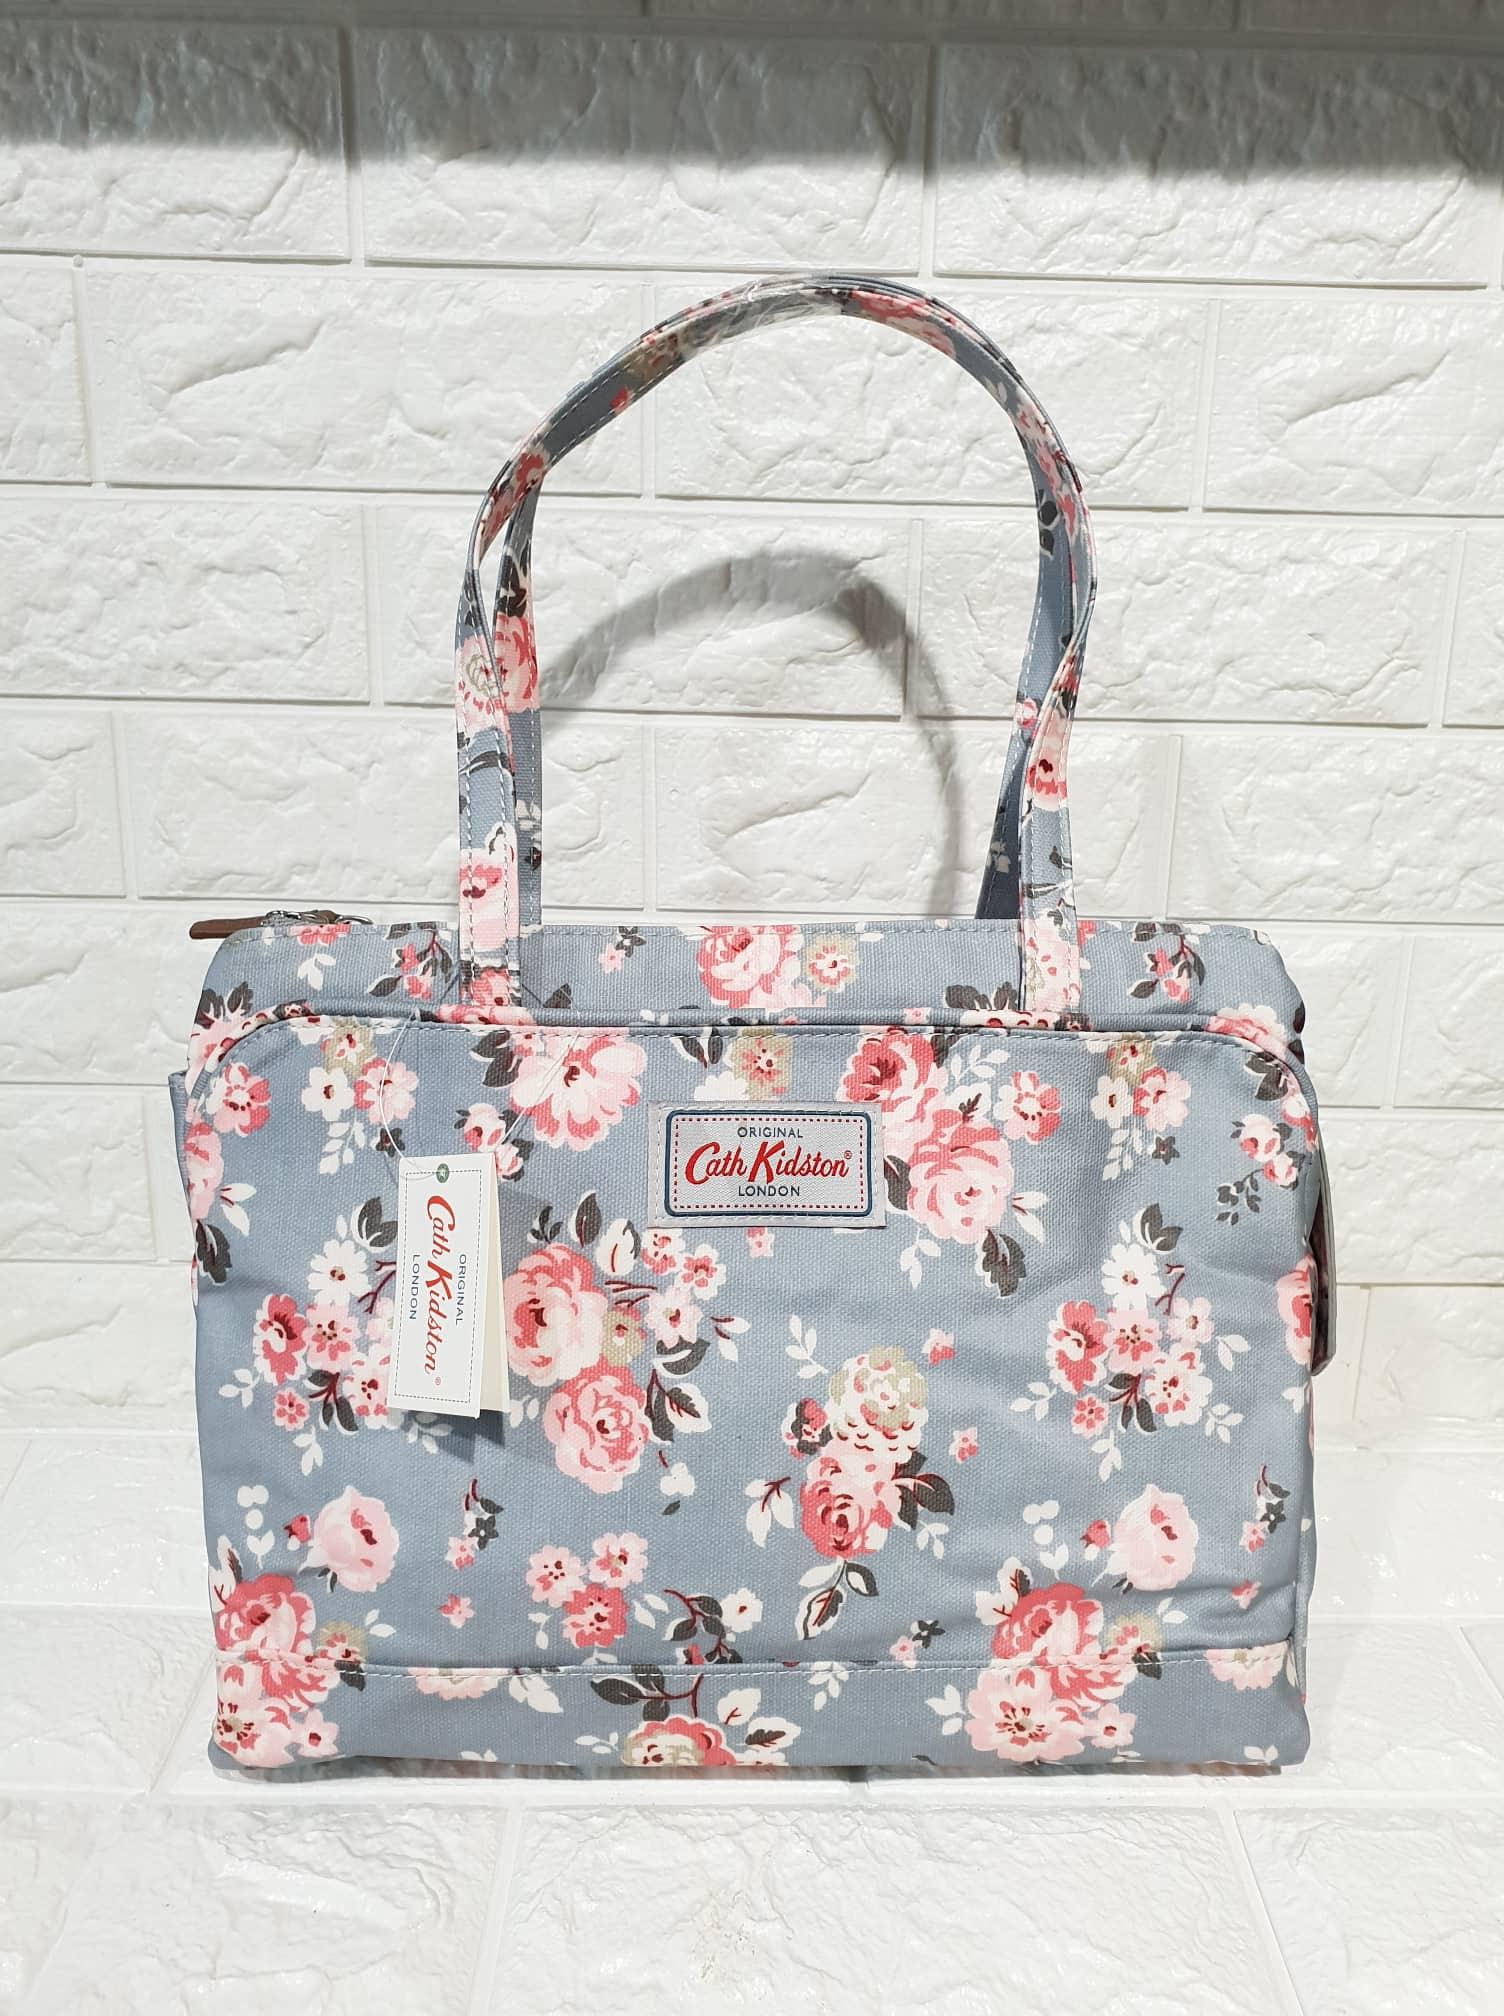 45b0154037 Cath Kidston Philippines  Cath Kidston price list - Backpacks ...